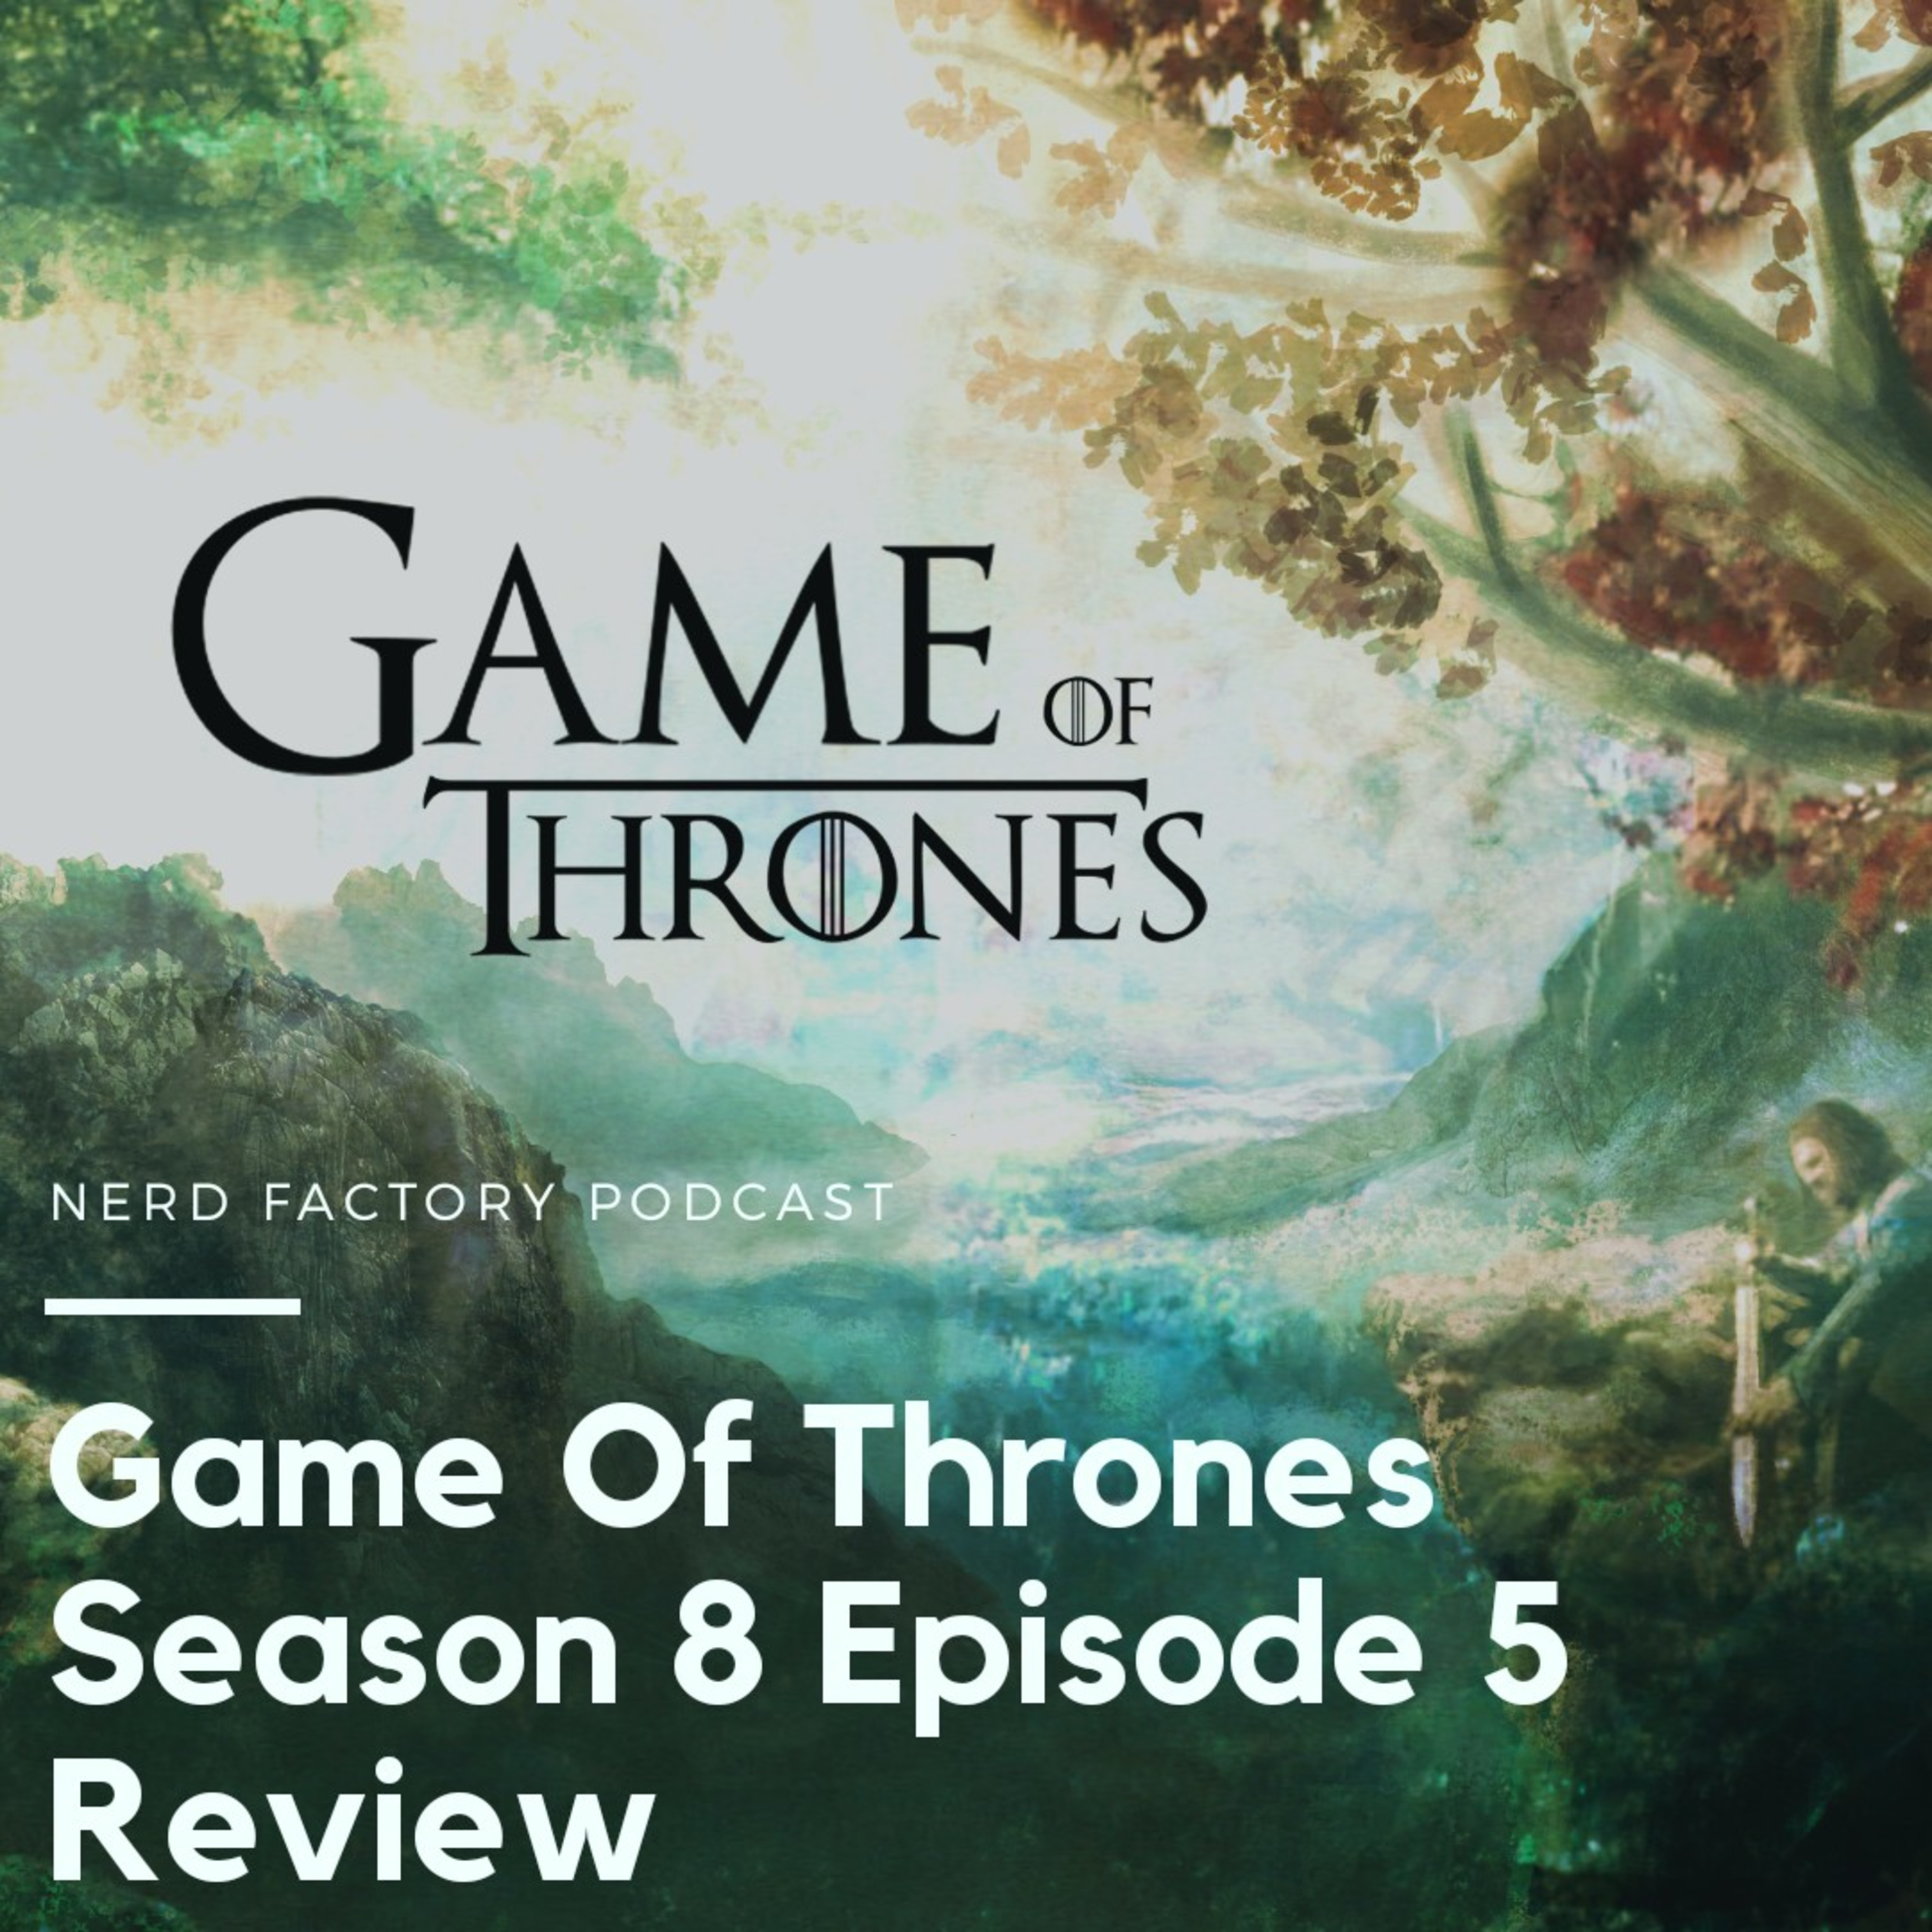 TV Discussion: Game Of Thrones Season 8 Episode 5 Review and Discussion